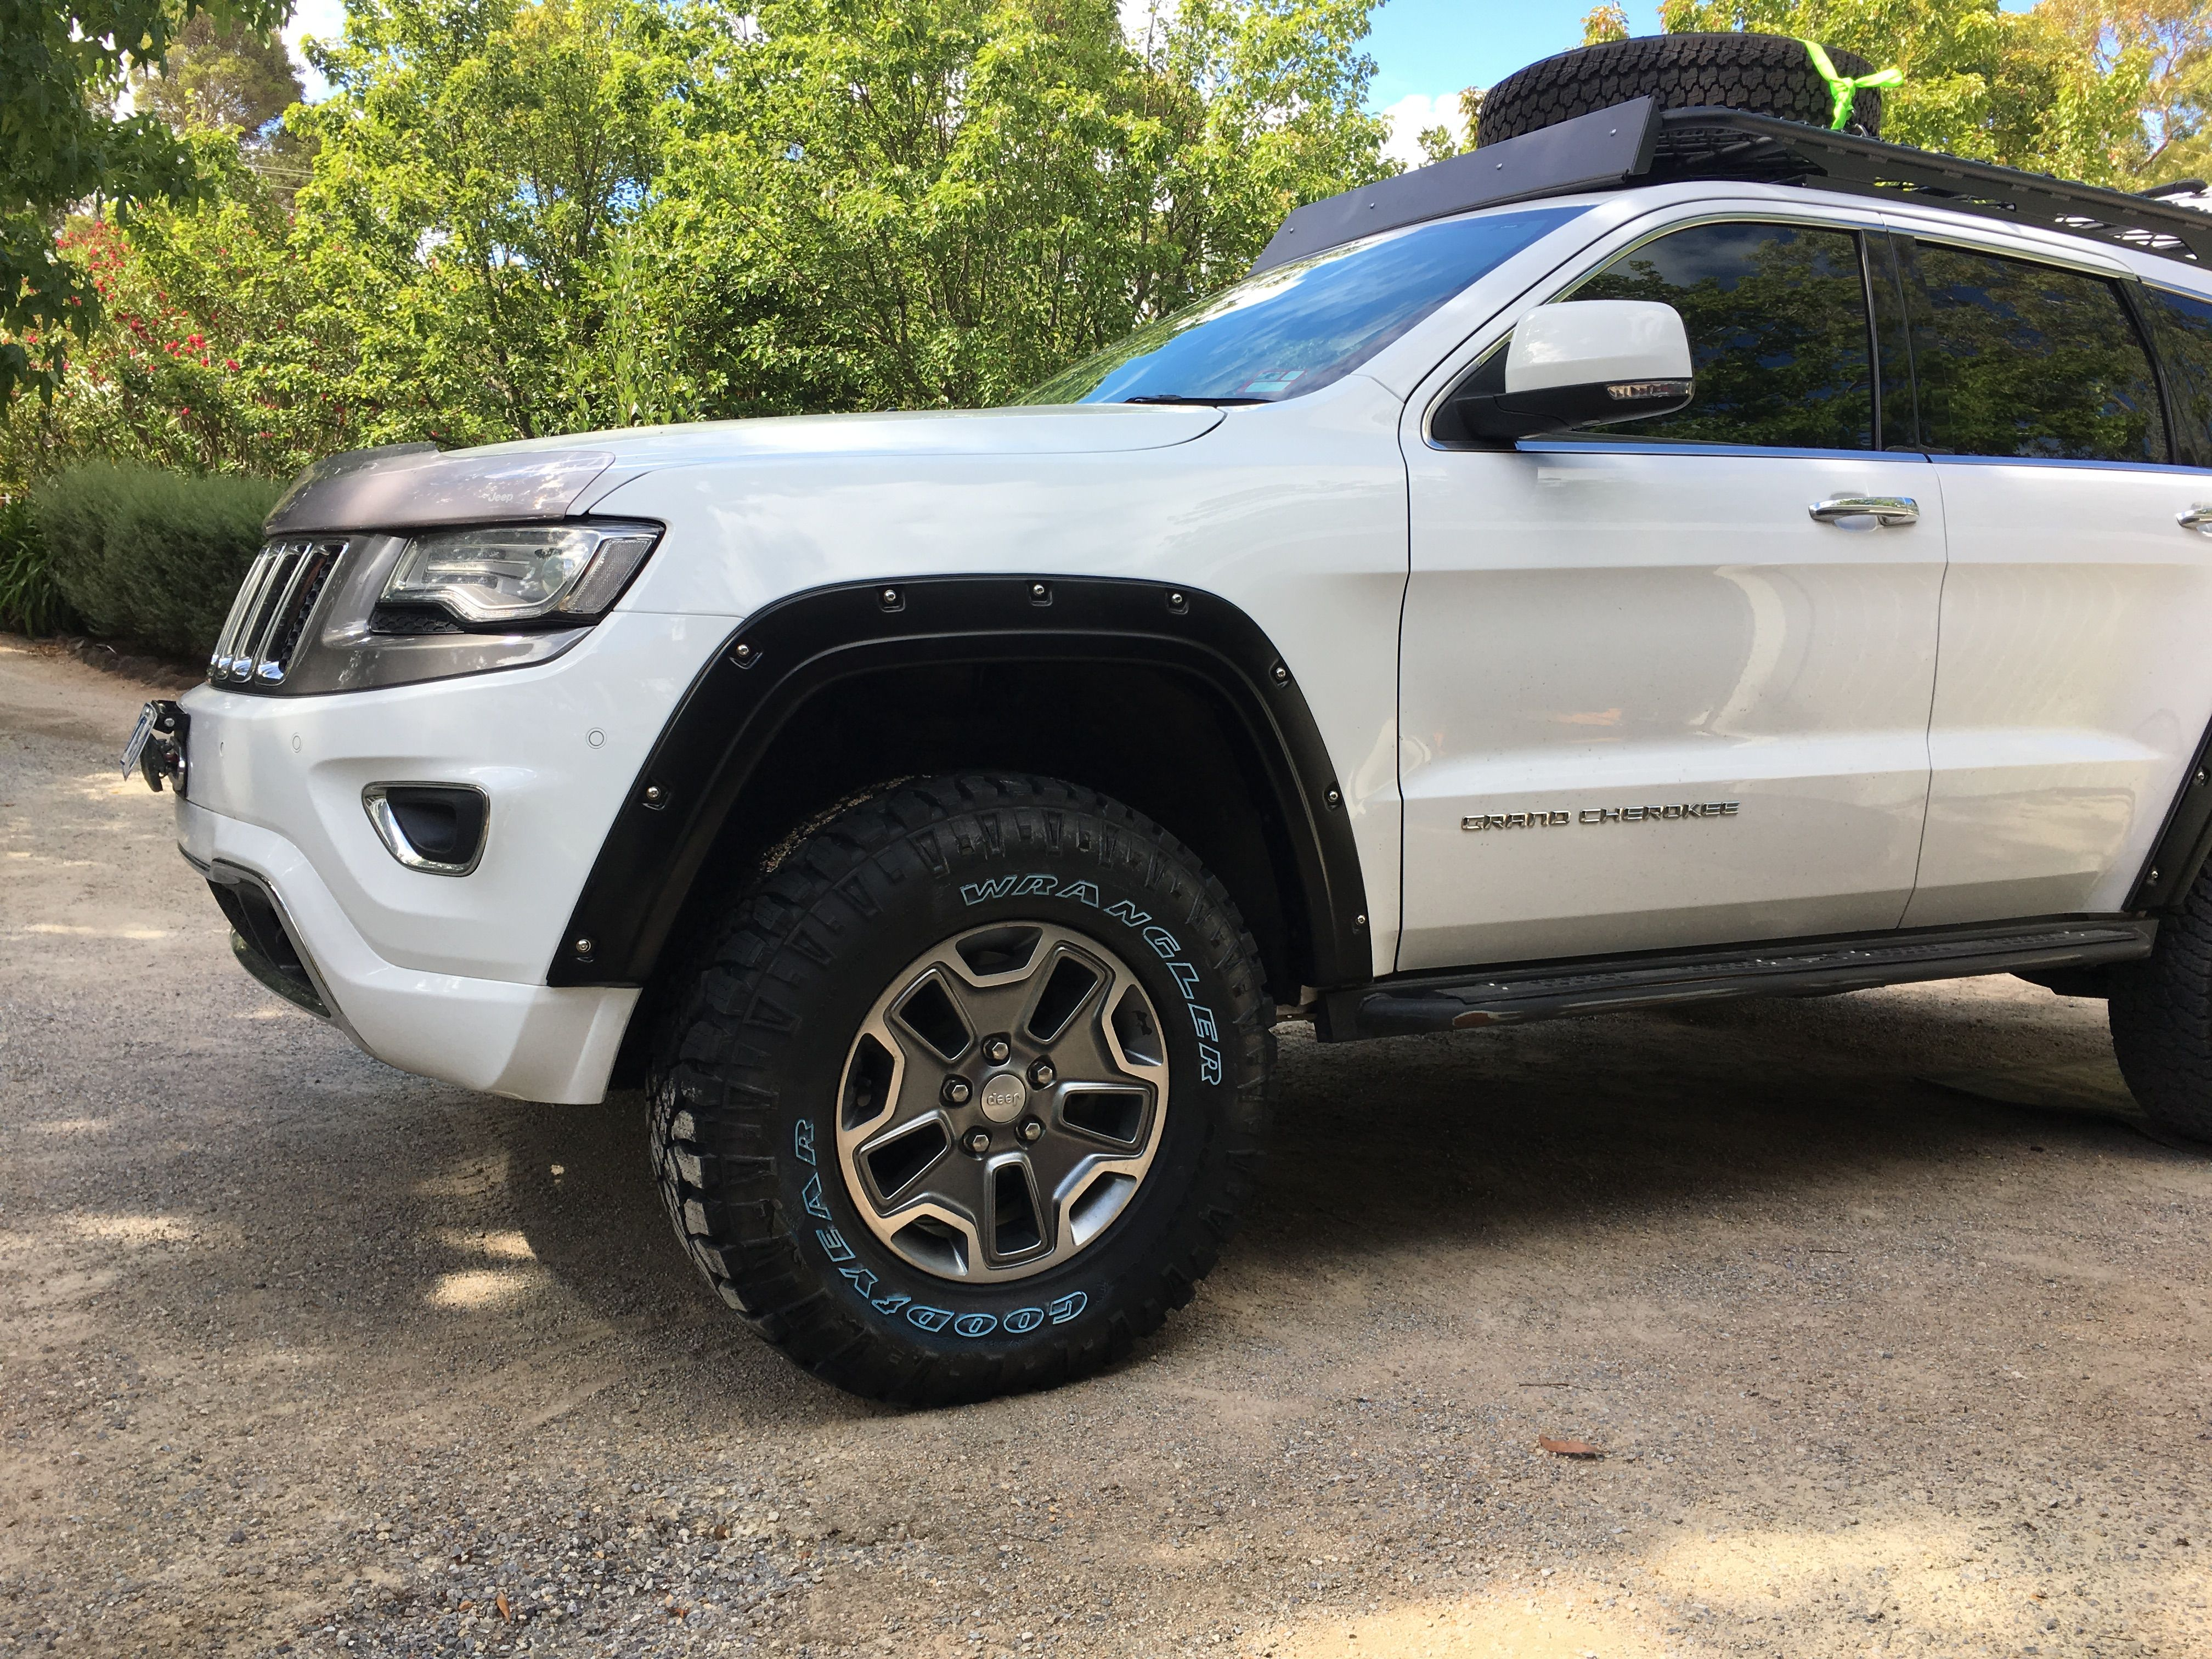 Pin By Shane Schipporeit On Jeep Grand Cherokee Jeep Grand Cherokee Jeep Cherokee Jeep Wrangler Unlimited